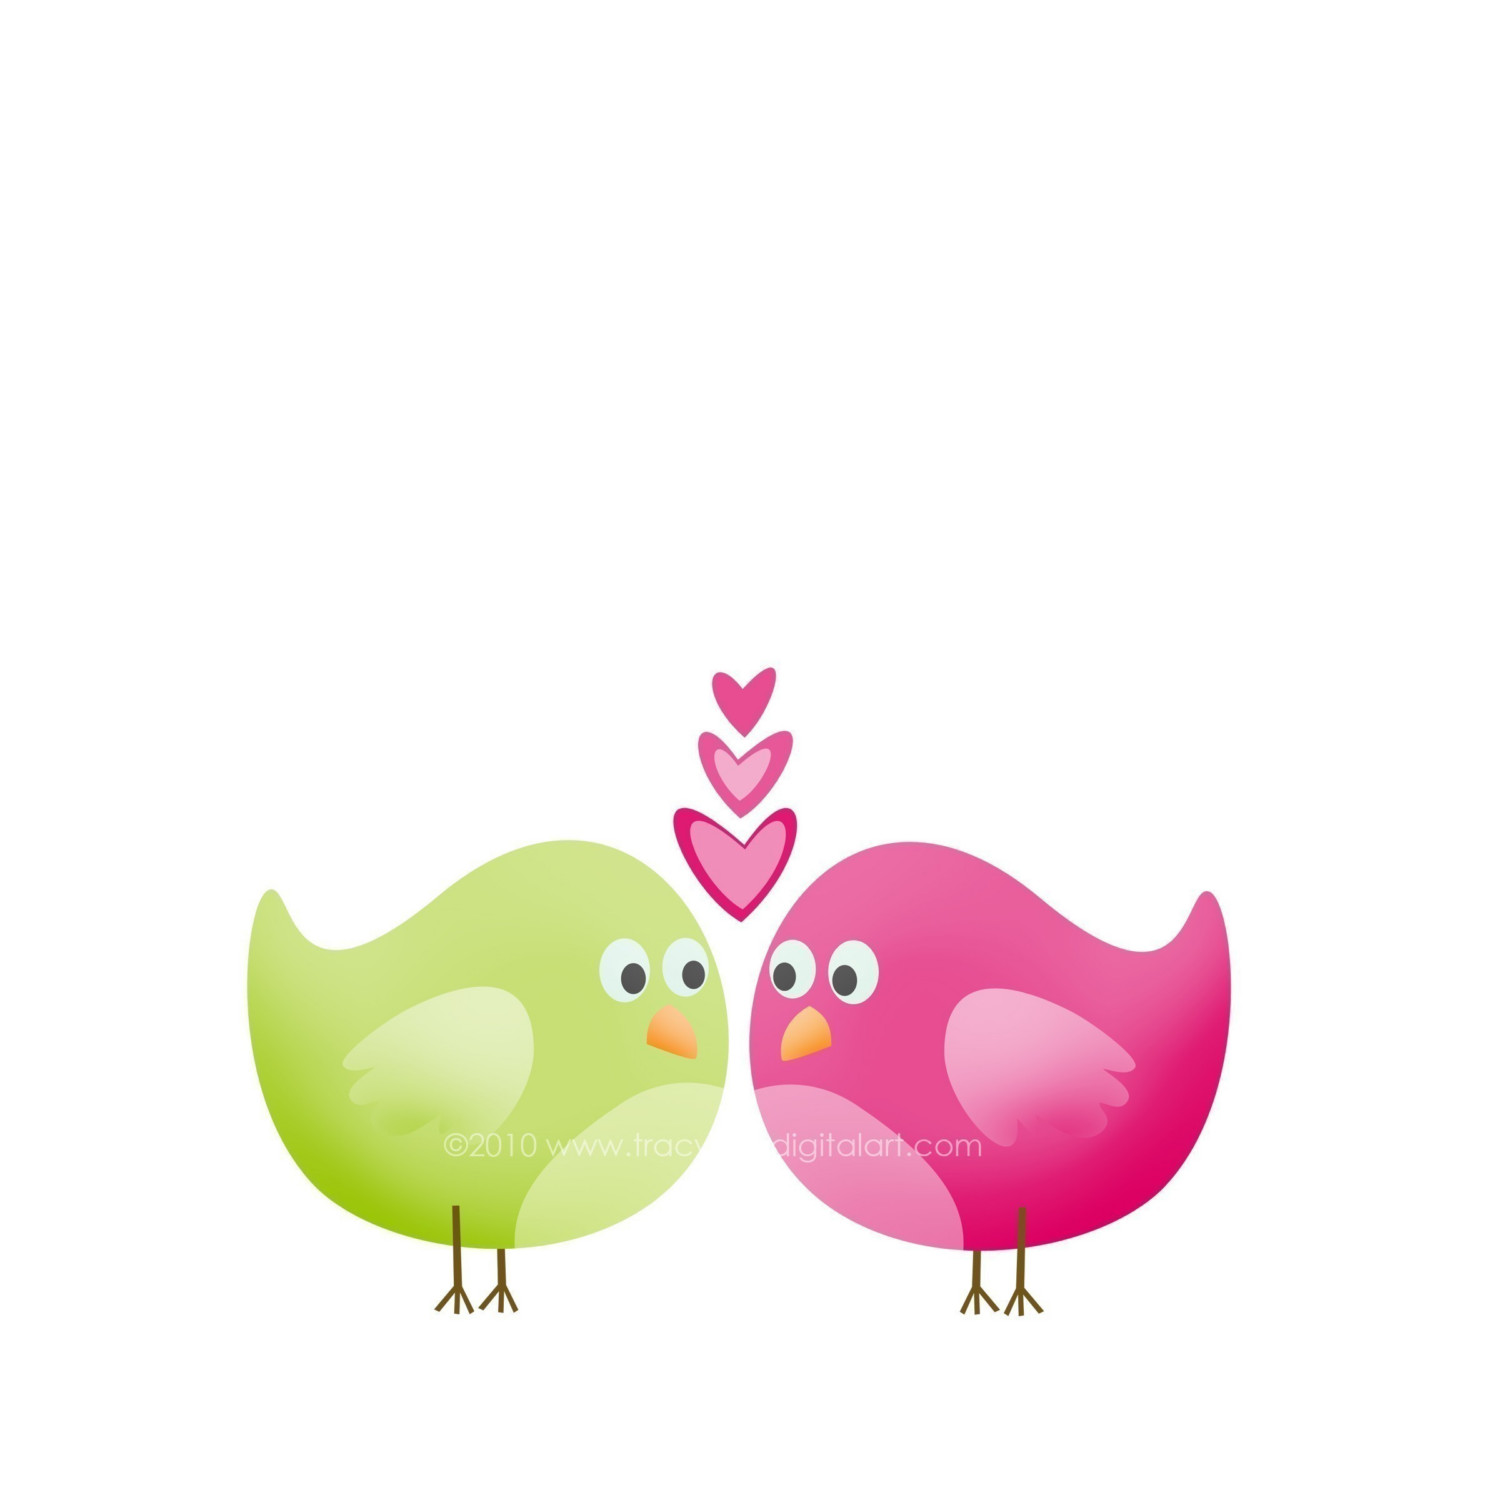 Wedding love bird clipart picture library library Love Birds Clipart Wedding | Clipart Panda - Free Clipart Images picture library library